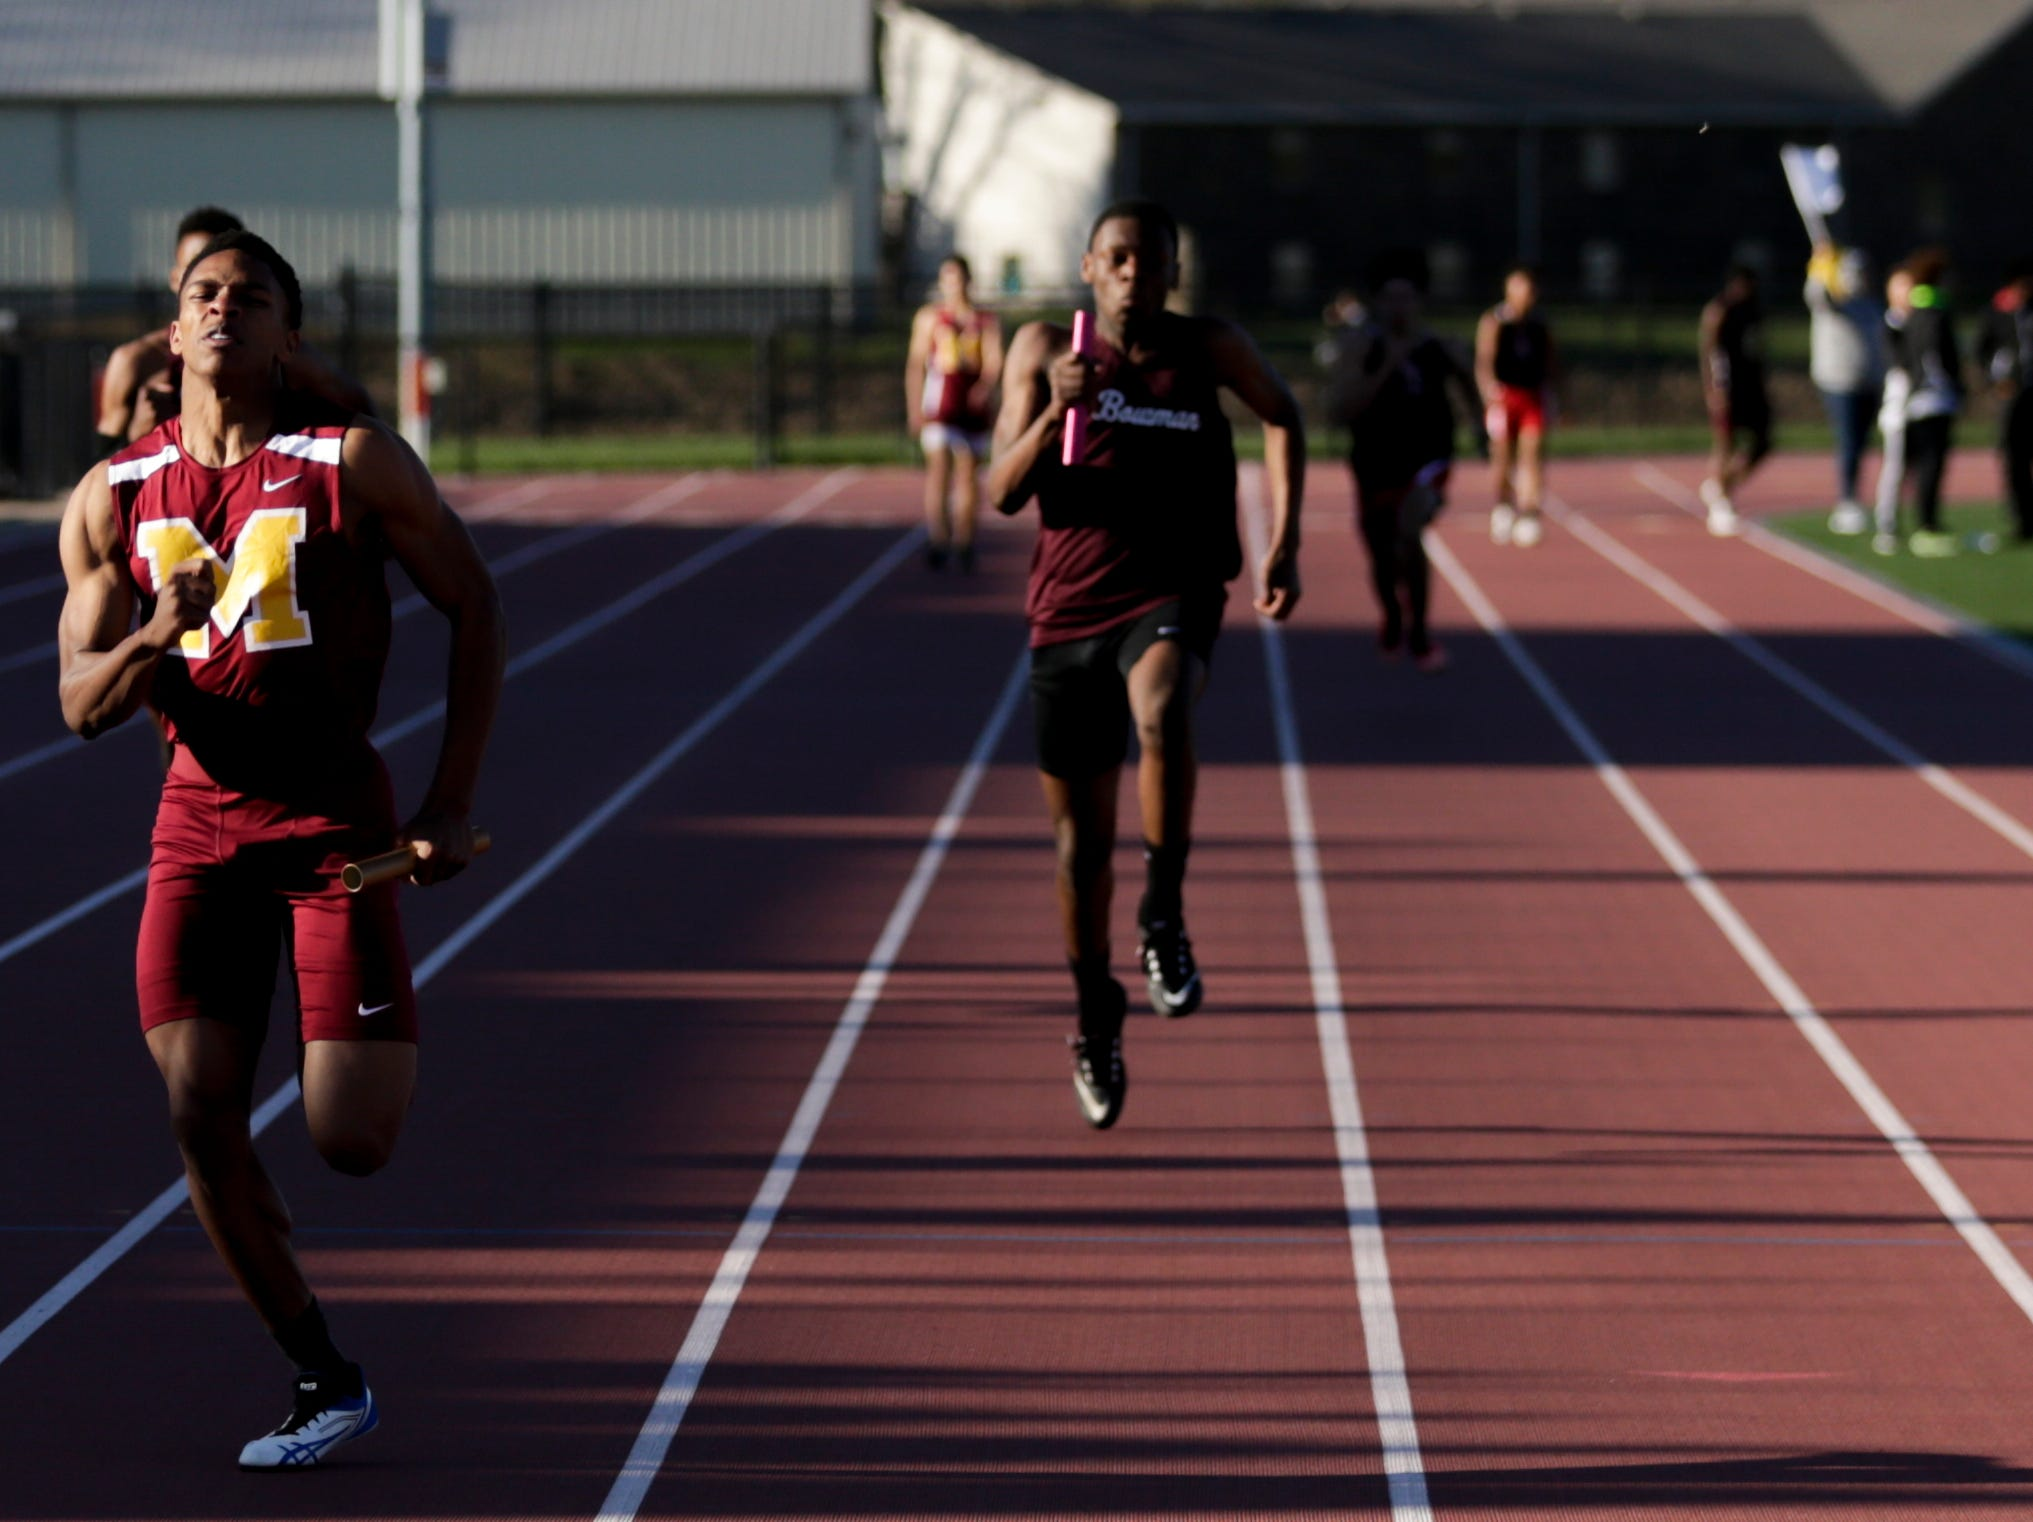 McCutcheon runners competes in the men's 4x100 relay during the 2019 Sprinters Showcase, Friday, April 12, 2019, at Lafayette Jeff High School in Lafayette.